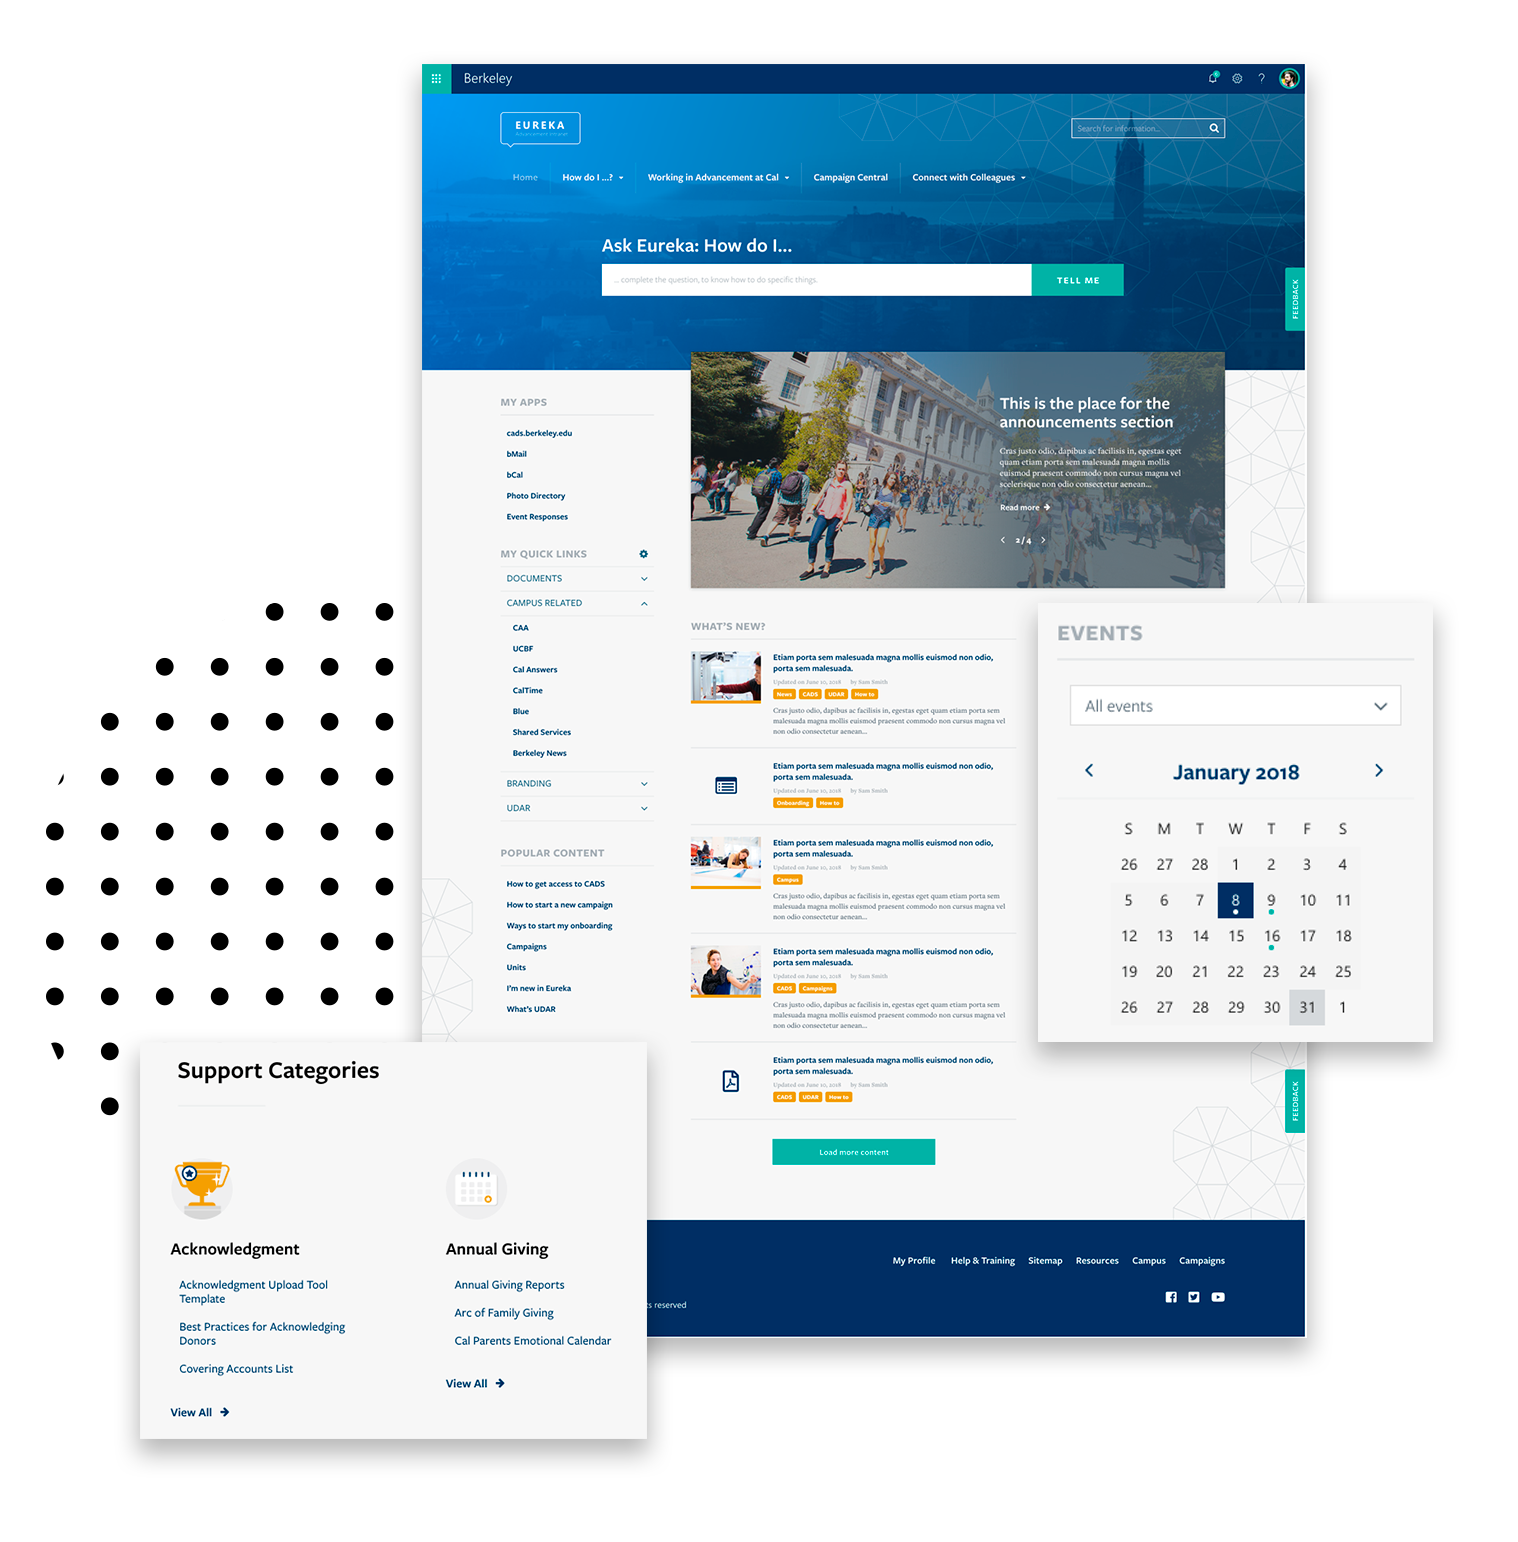 SharePoint Intranet Services